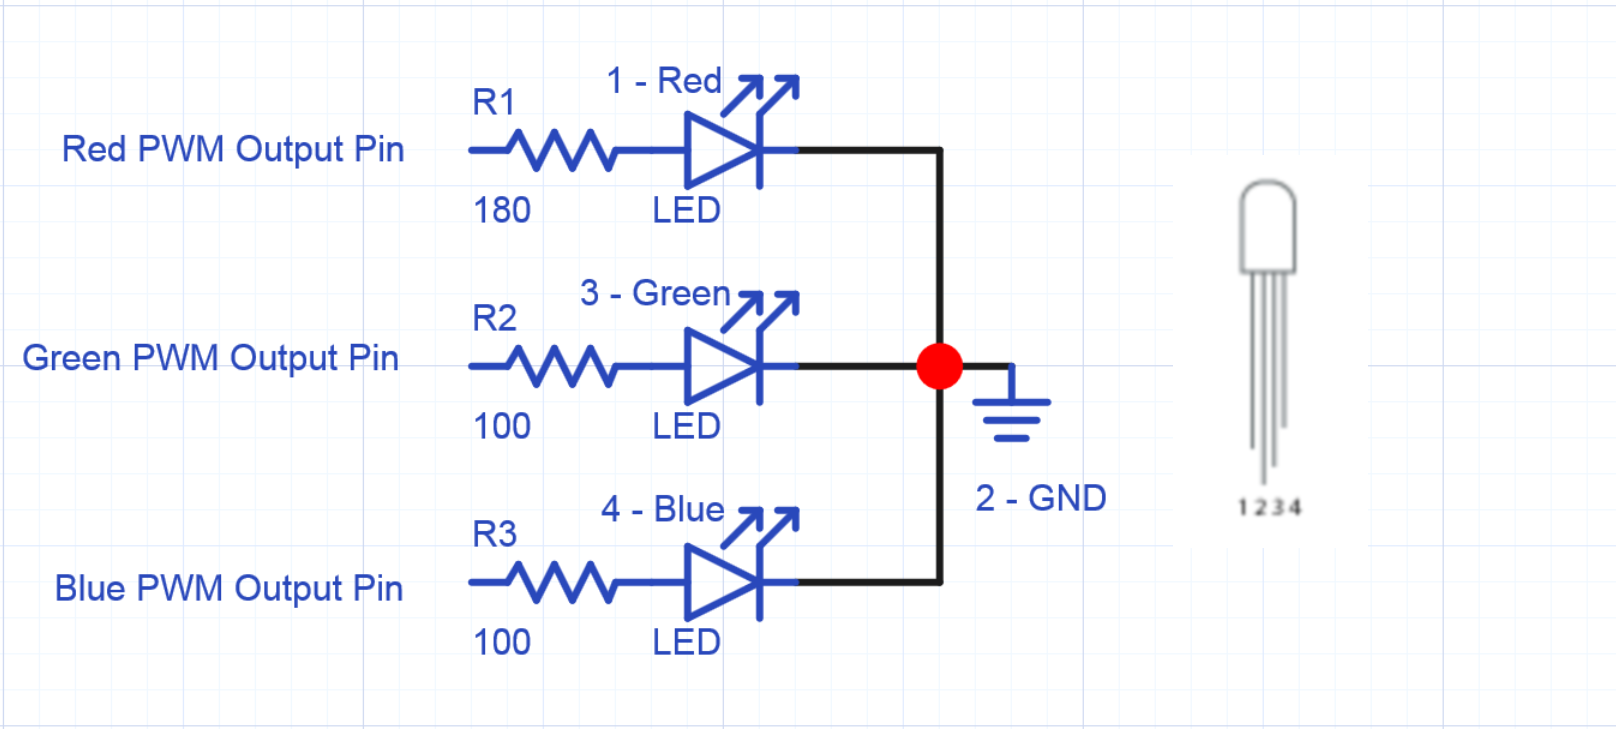 4 Leg Led Wiring Diagram List Of Schematic Circuit 0 10v Dimmer Using Rgb Leds Mbed Rh Os Com